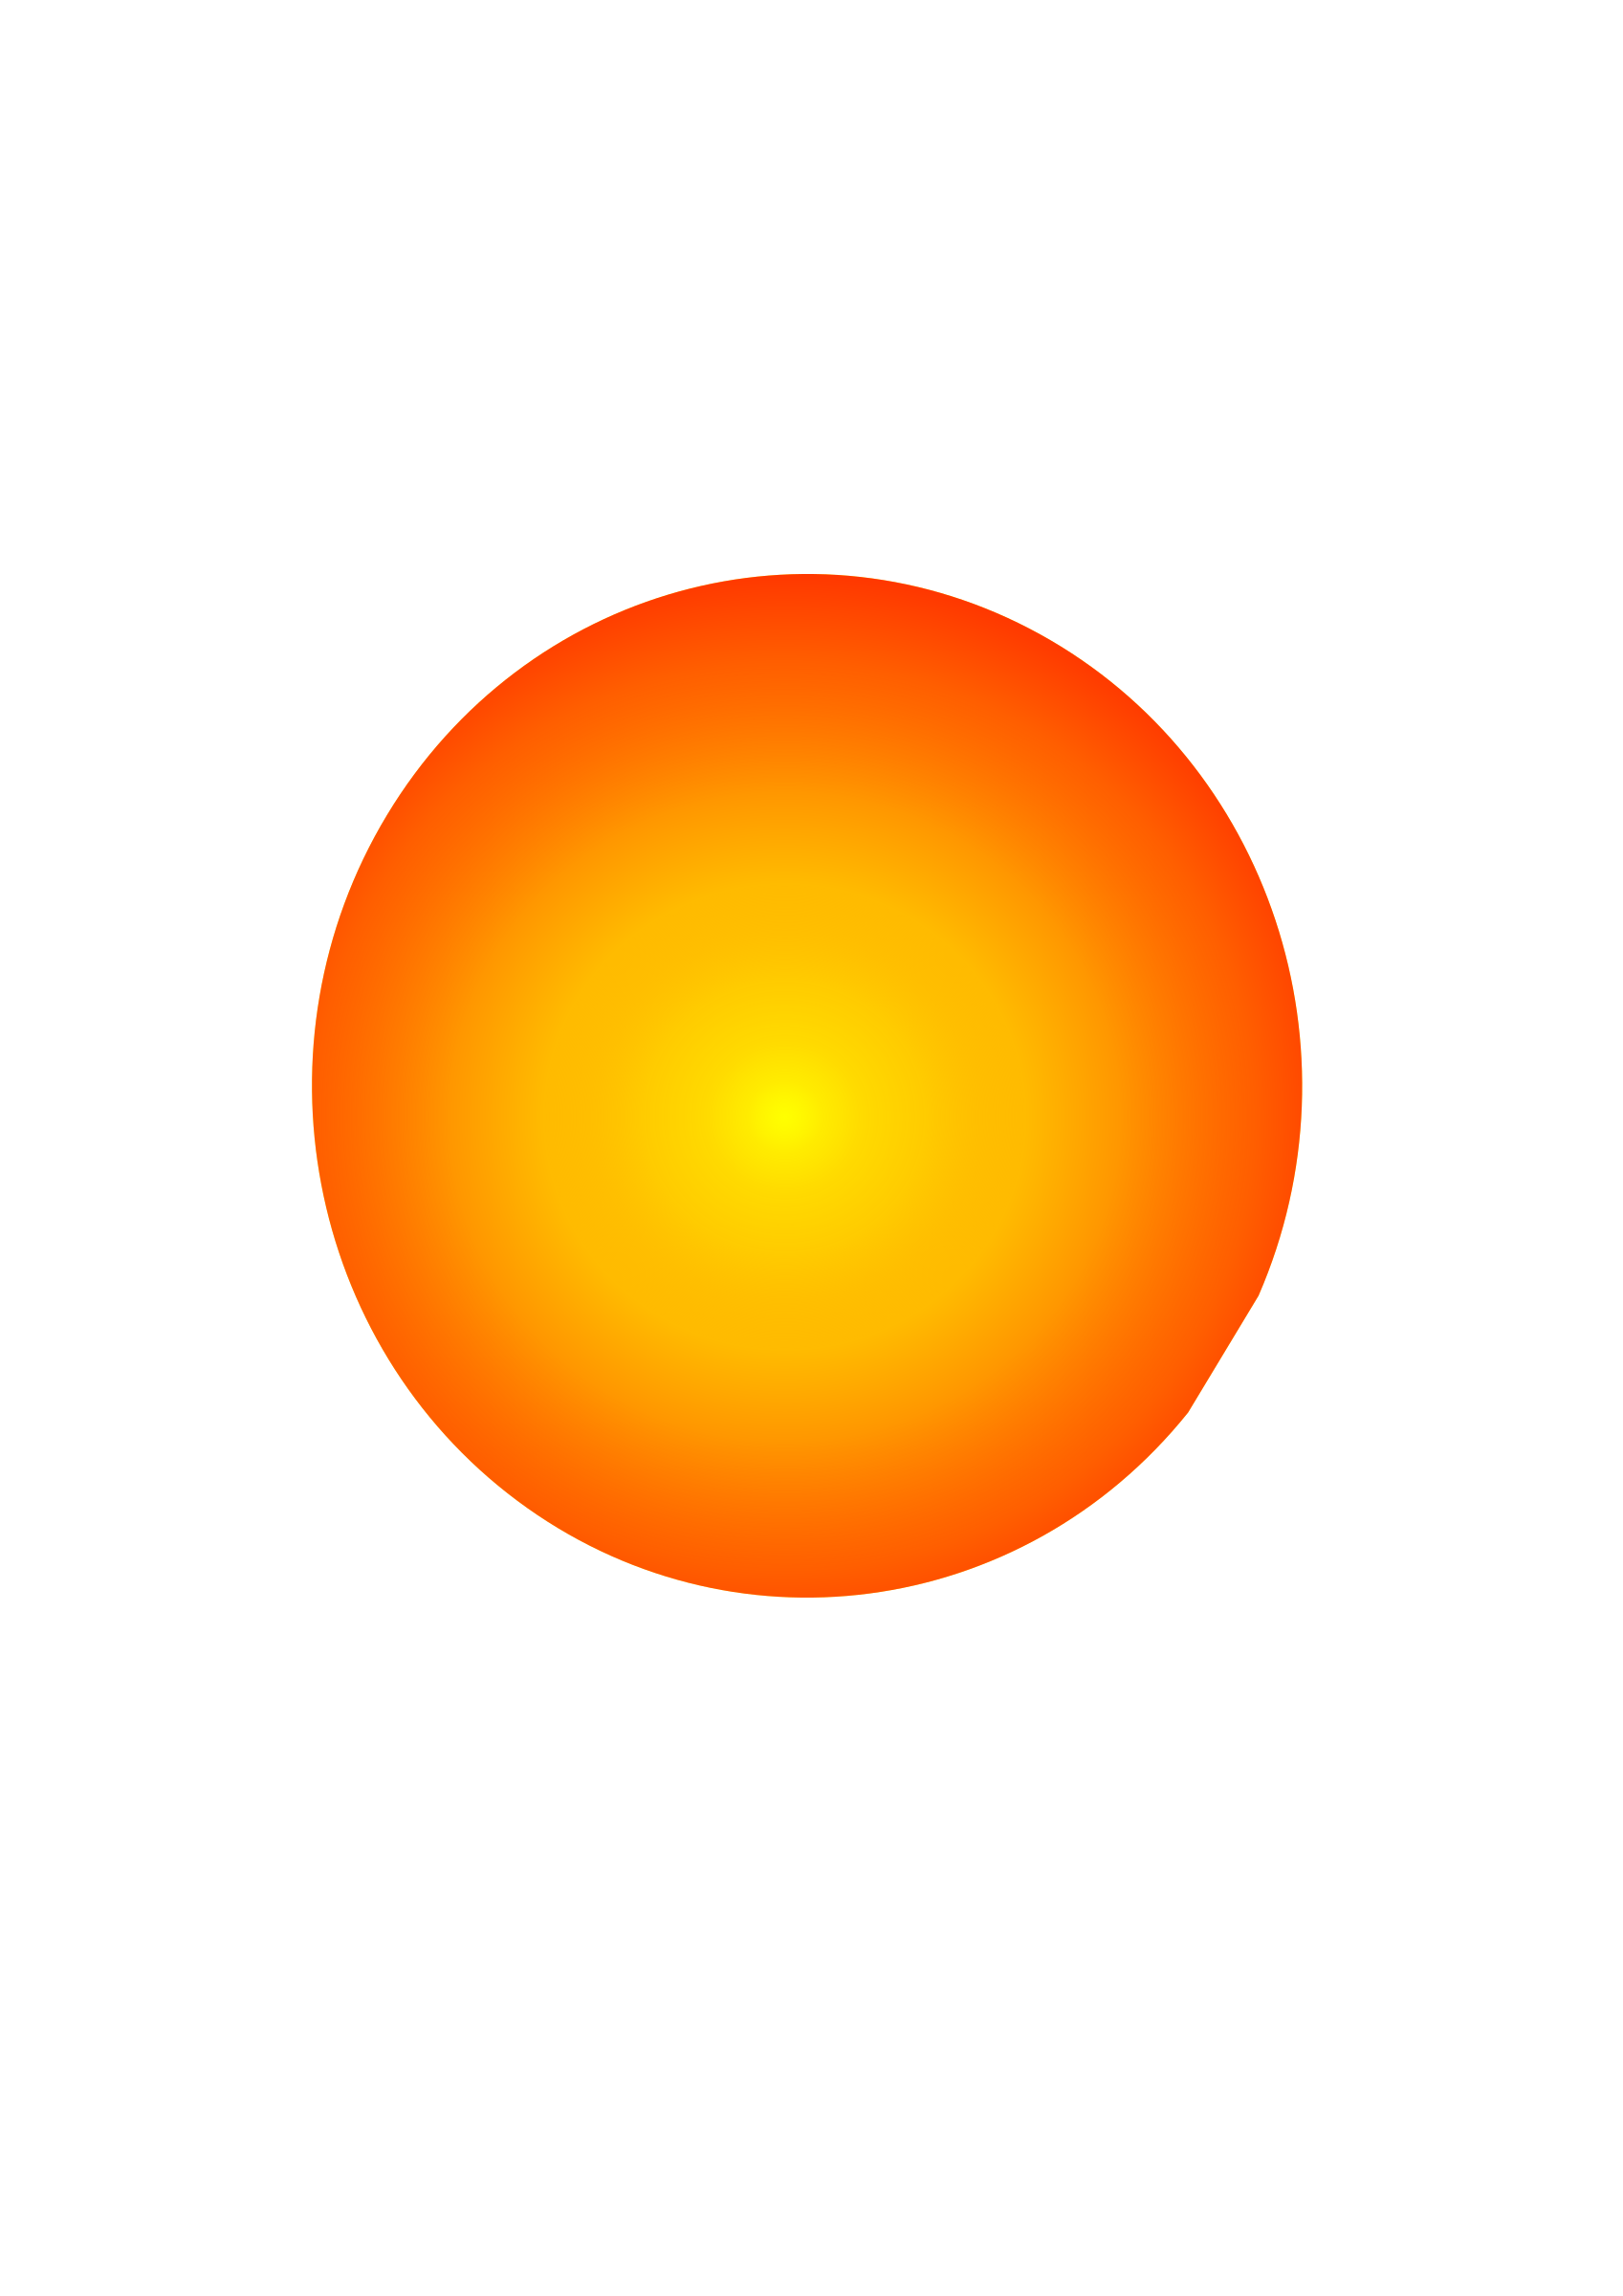 Cute clipart planet. My sun big image